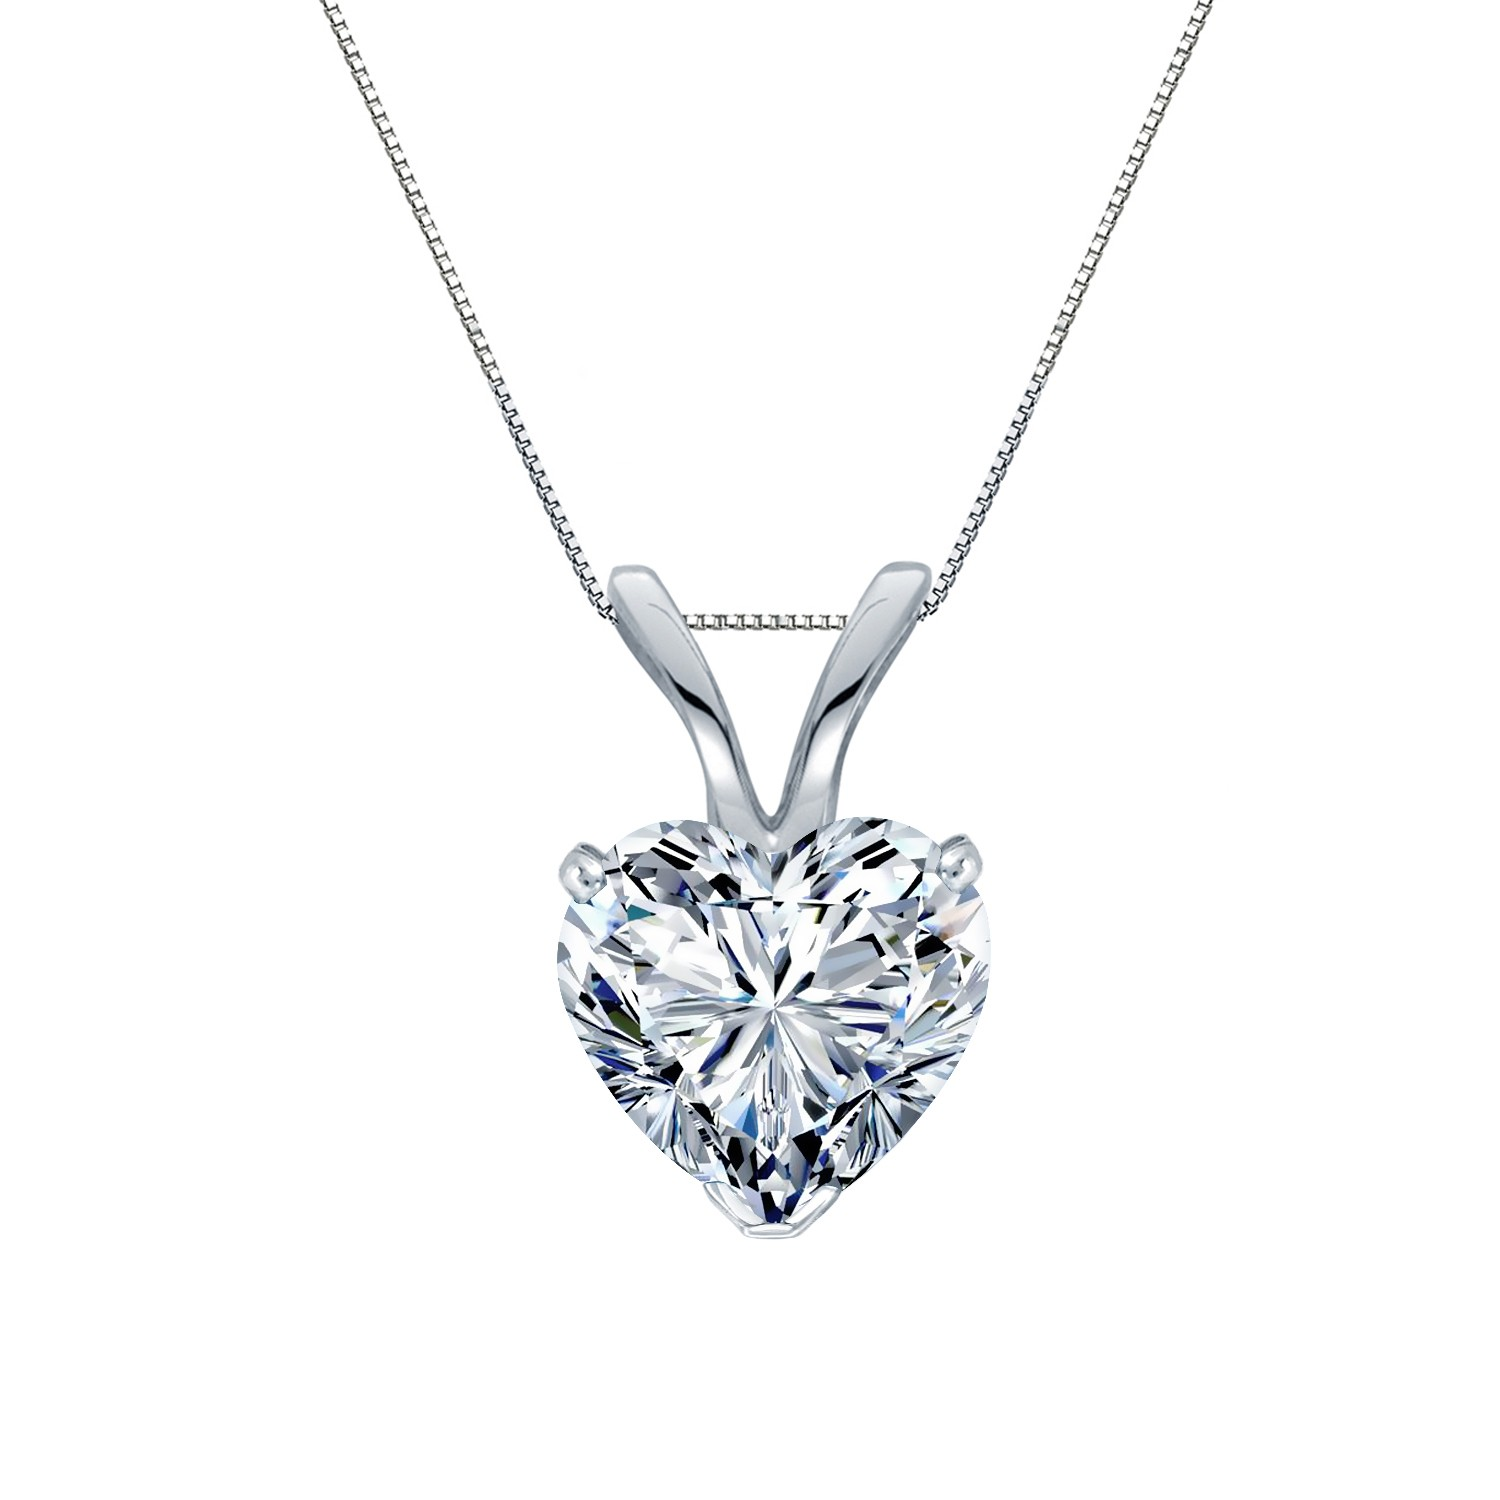 Certified 14k White Gold Heart Shape Diamond Solitaire Pendant 0.50 ct. tw. (H-I, SI1-SI2)